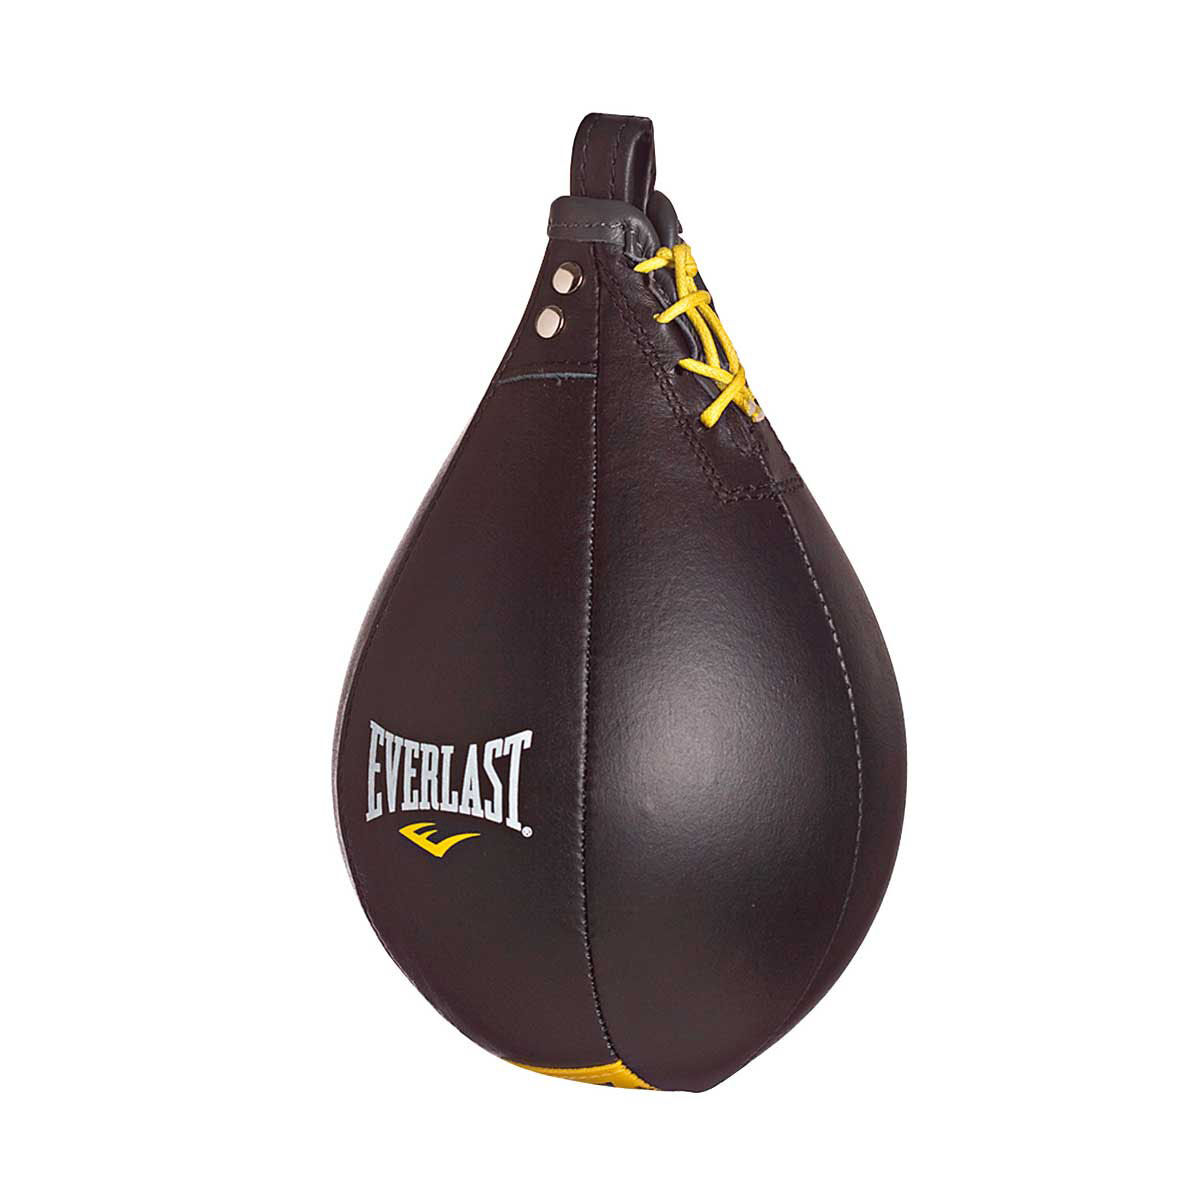 Hot Adjustable Double End MMA Boxing Training Gear Punching Speed Ball Bag UTAR